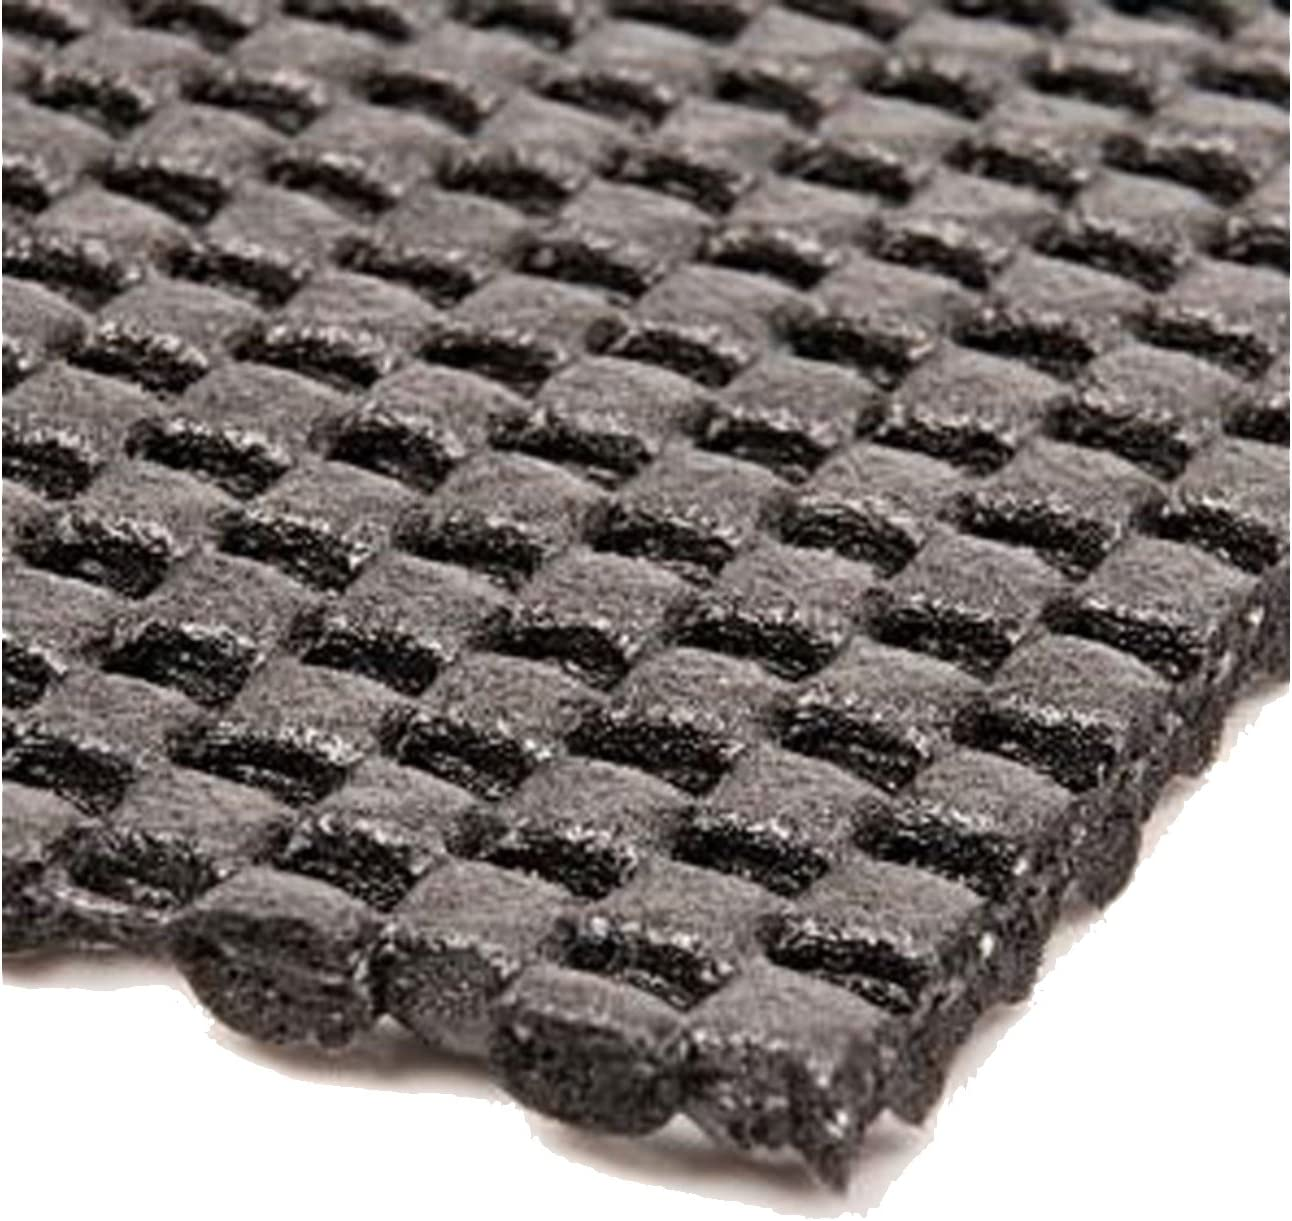 None Slip Matting for the Floor Boot Truck of car Can be cut to suit Prevents Tools Shopping etc sliding around the boot suitable for Saloon Hatchback /& Estates